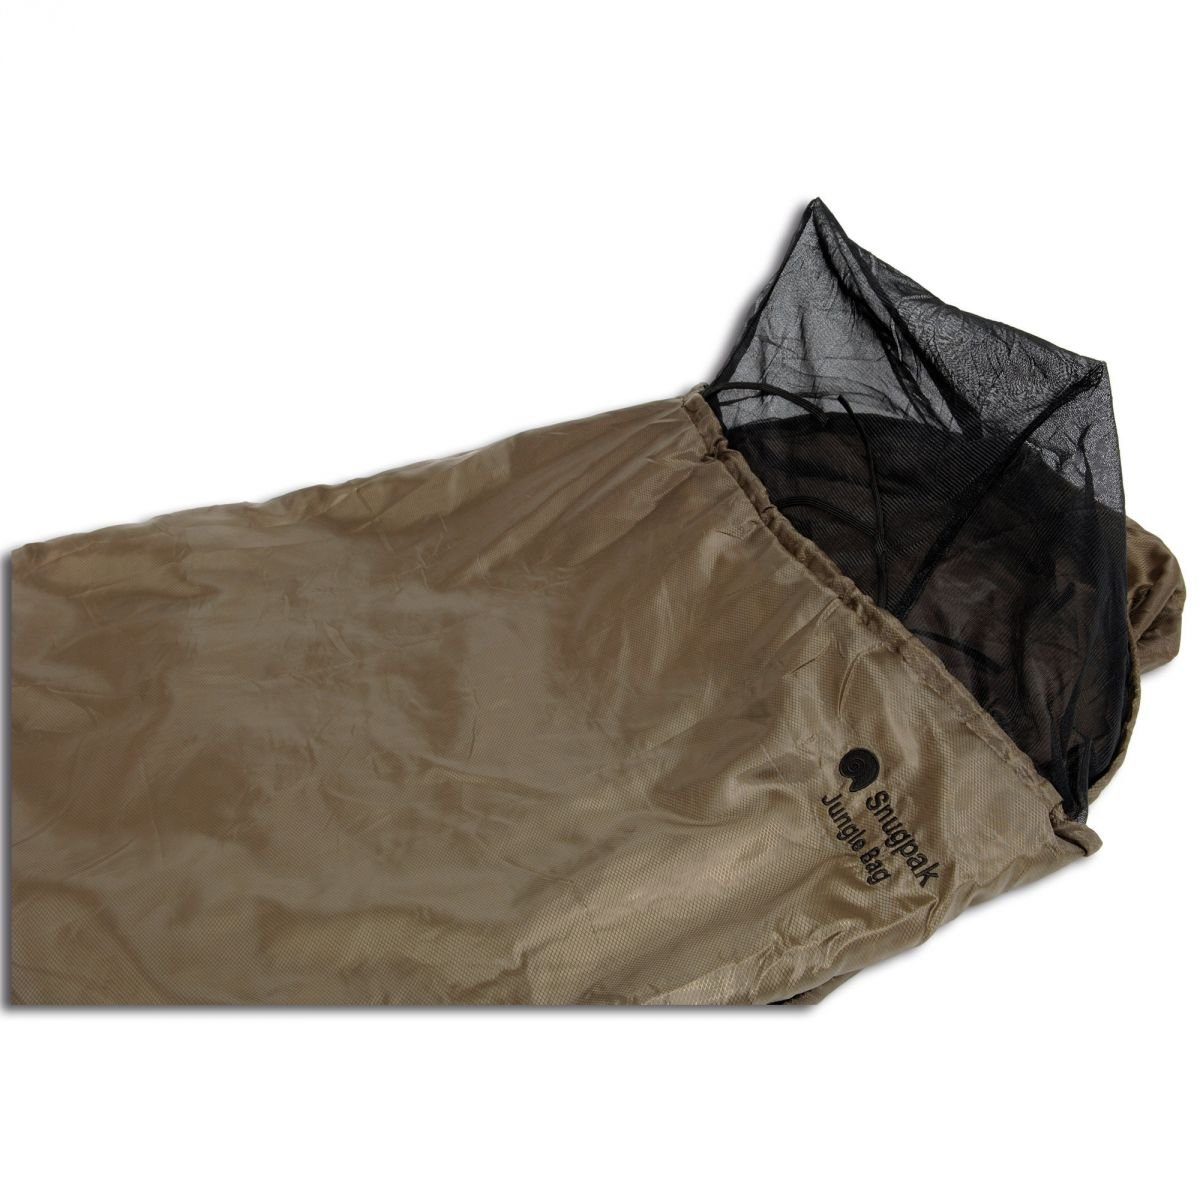 Saco de dormir Snugpak Jungle Bag verde: Amazon.es: Deportes y aire libre